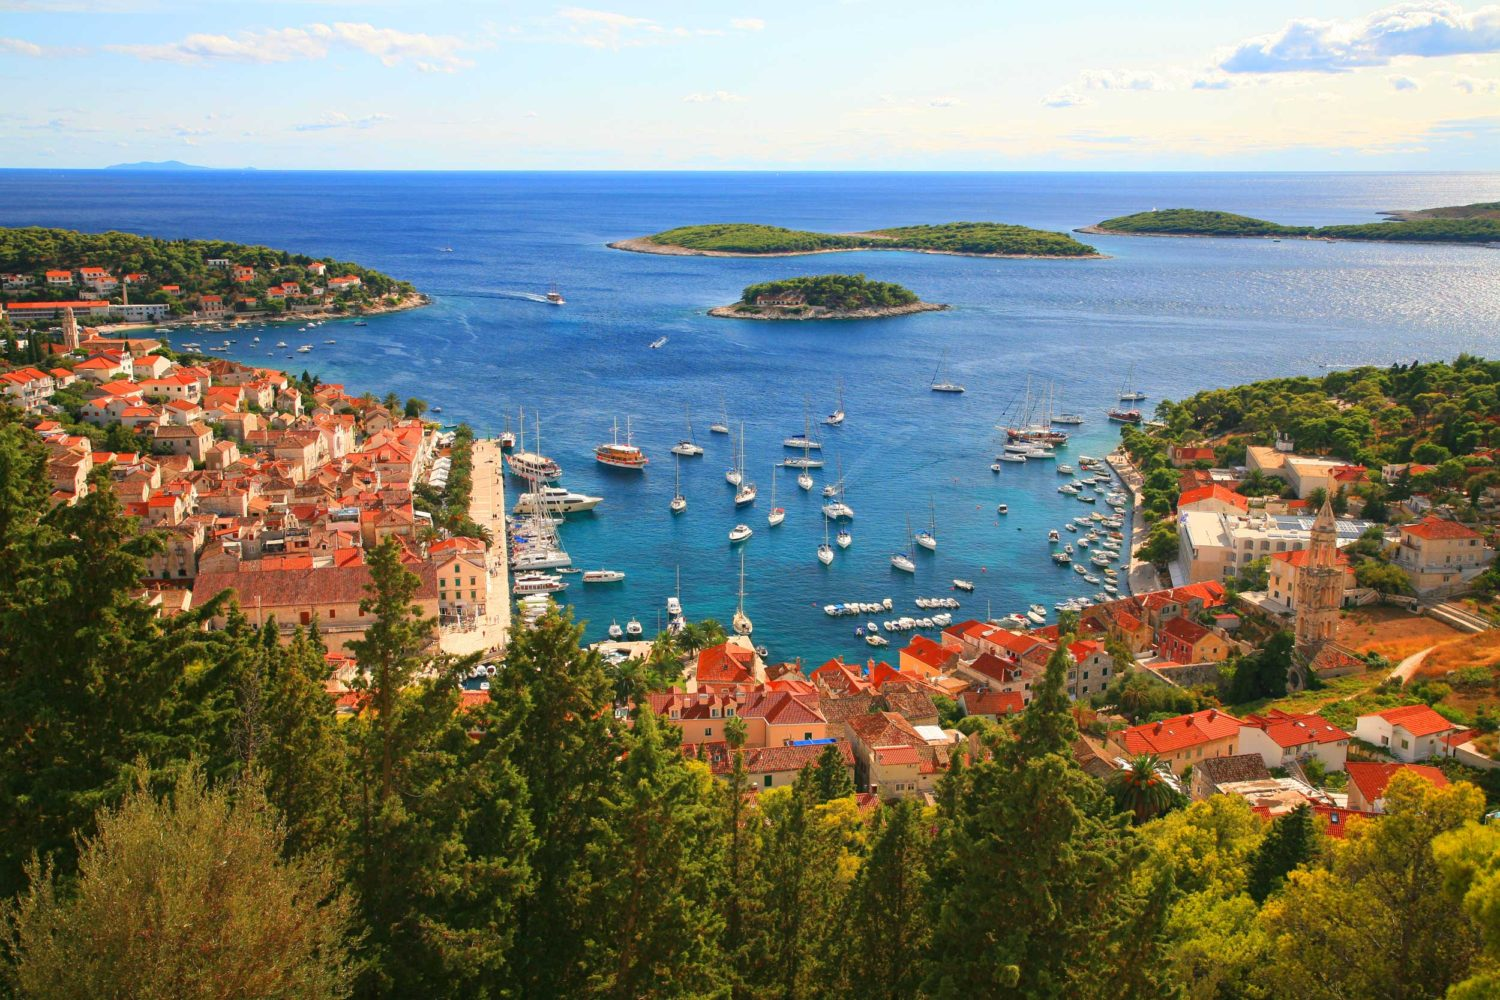 A Week in Croatia: The Dalmatian Coast